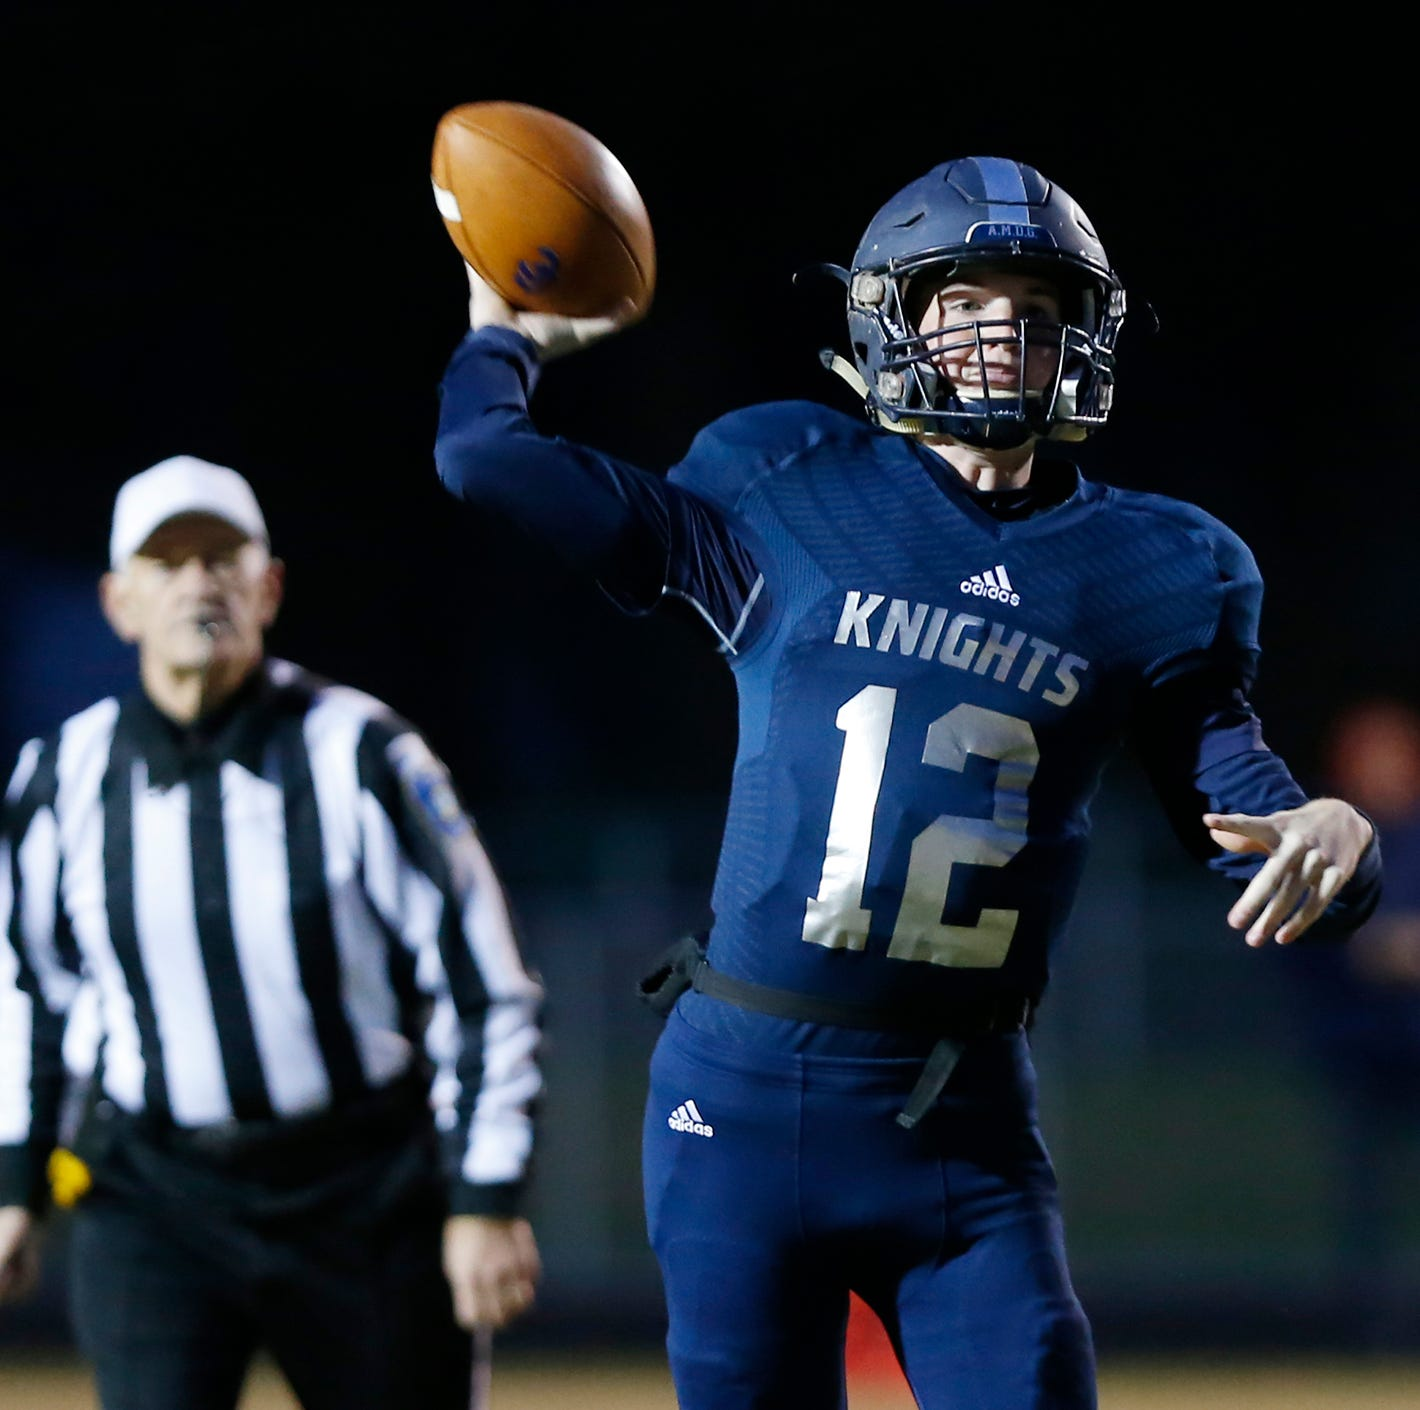 Central Catholic quarterback Wes Dulin with a pass in the first quarter against North White in the football sectional Friday, October 19, 2018, in Lafayette.